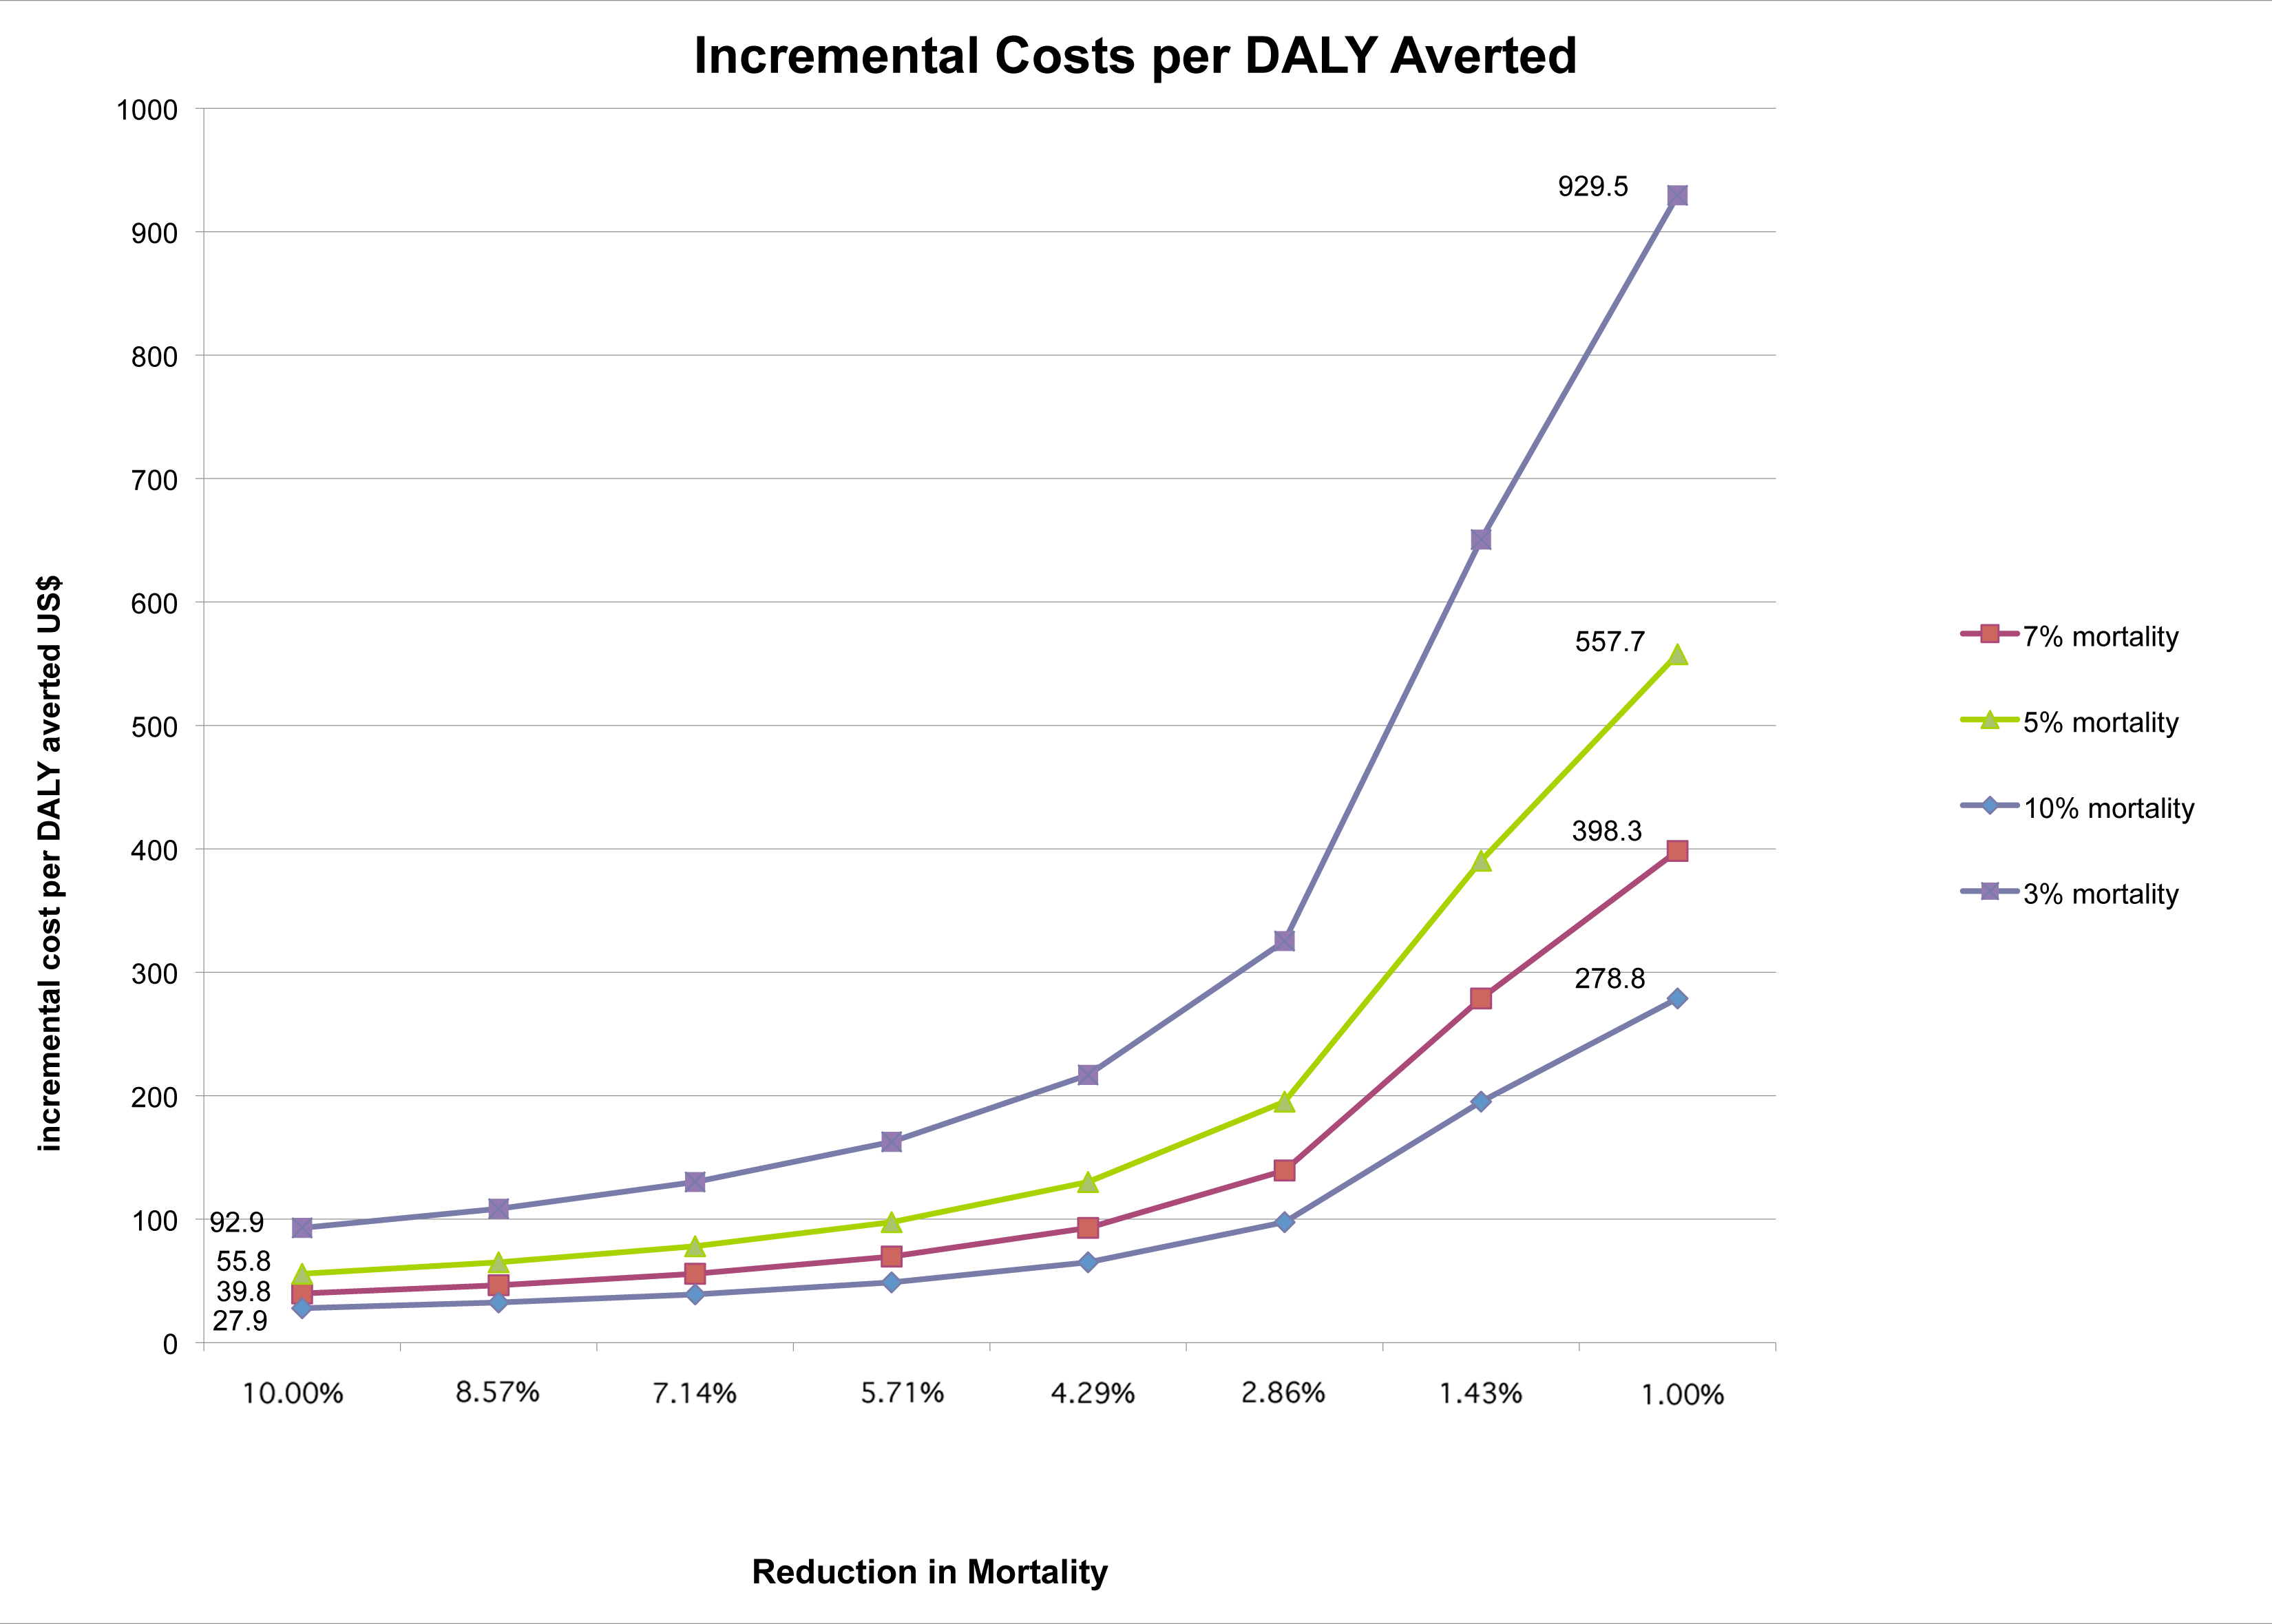 Relationship between reductions in inpatient mortality and the incremental cost per DALY averted.